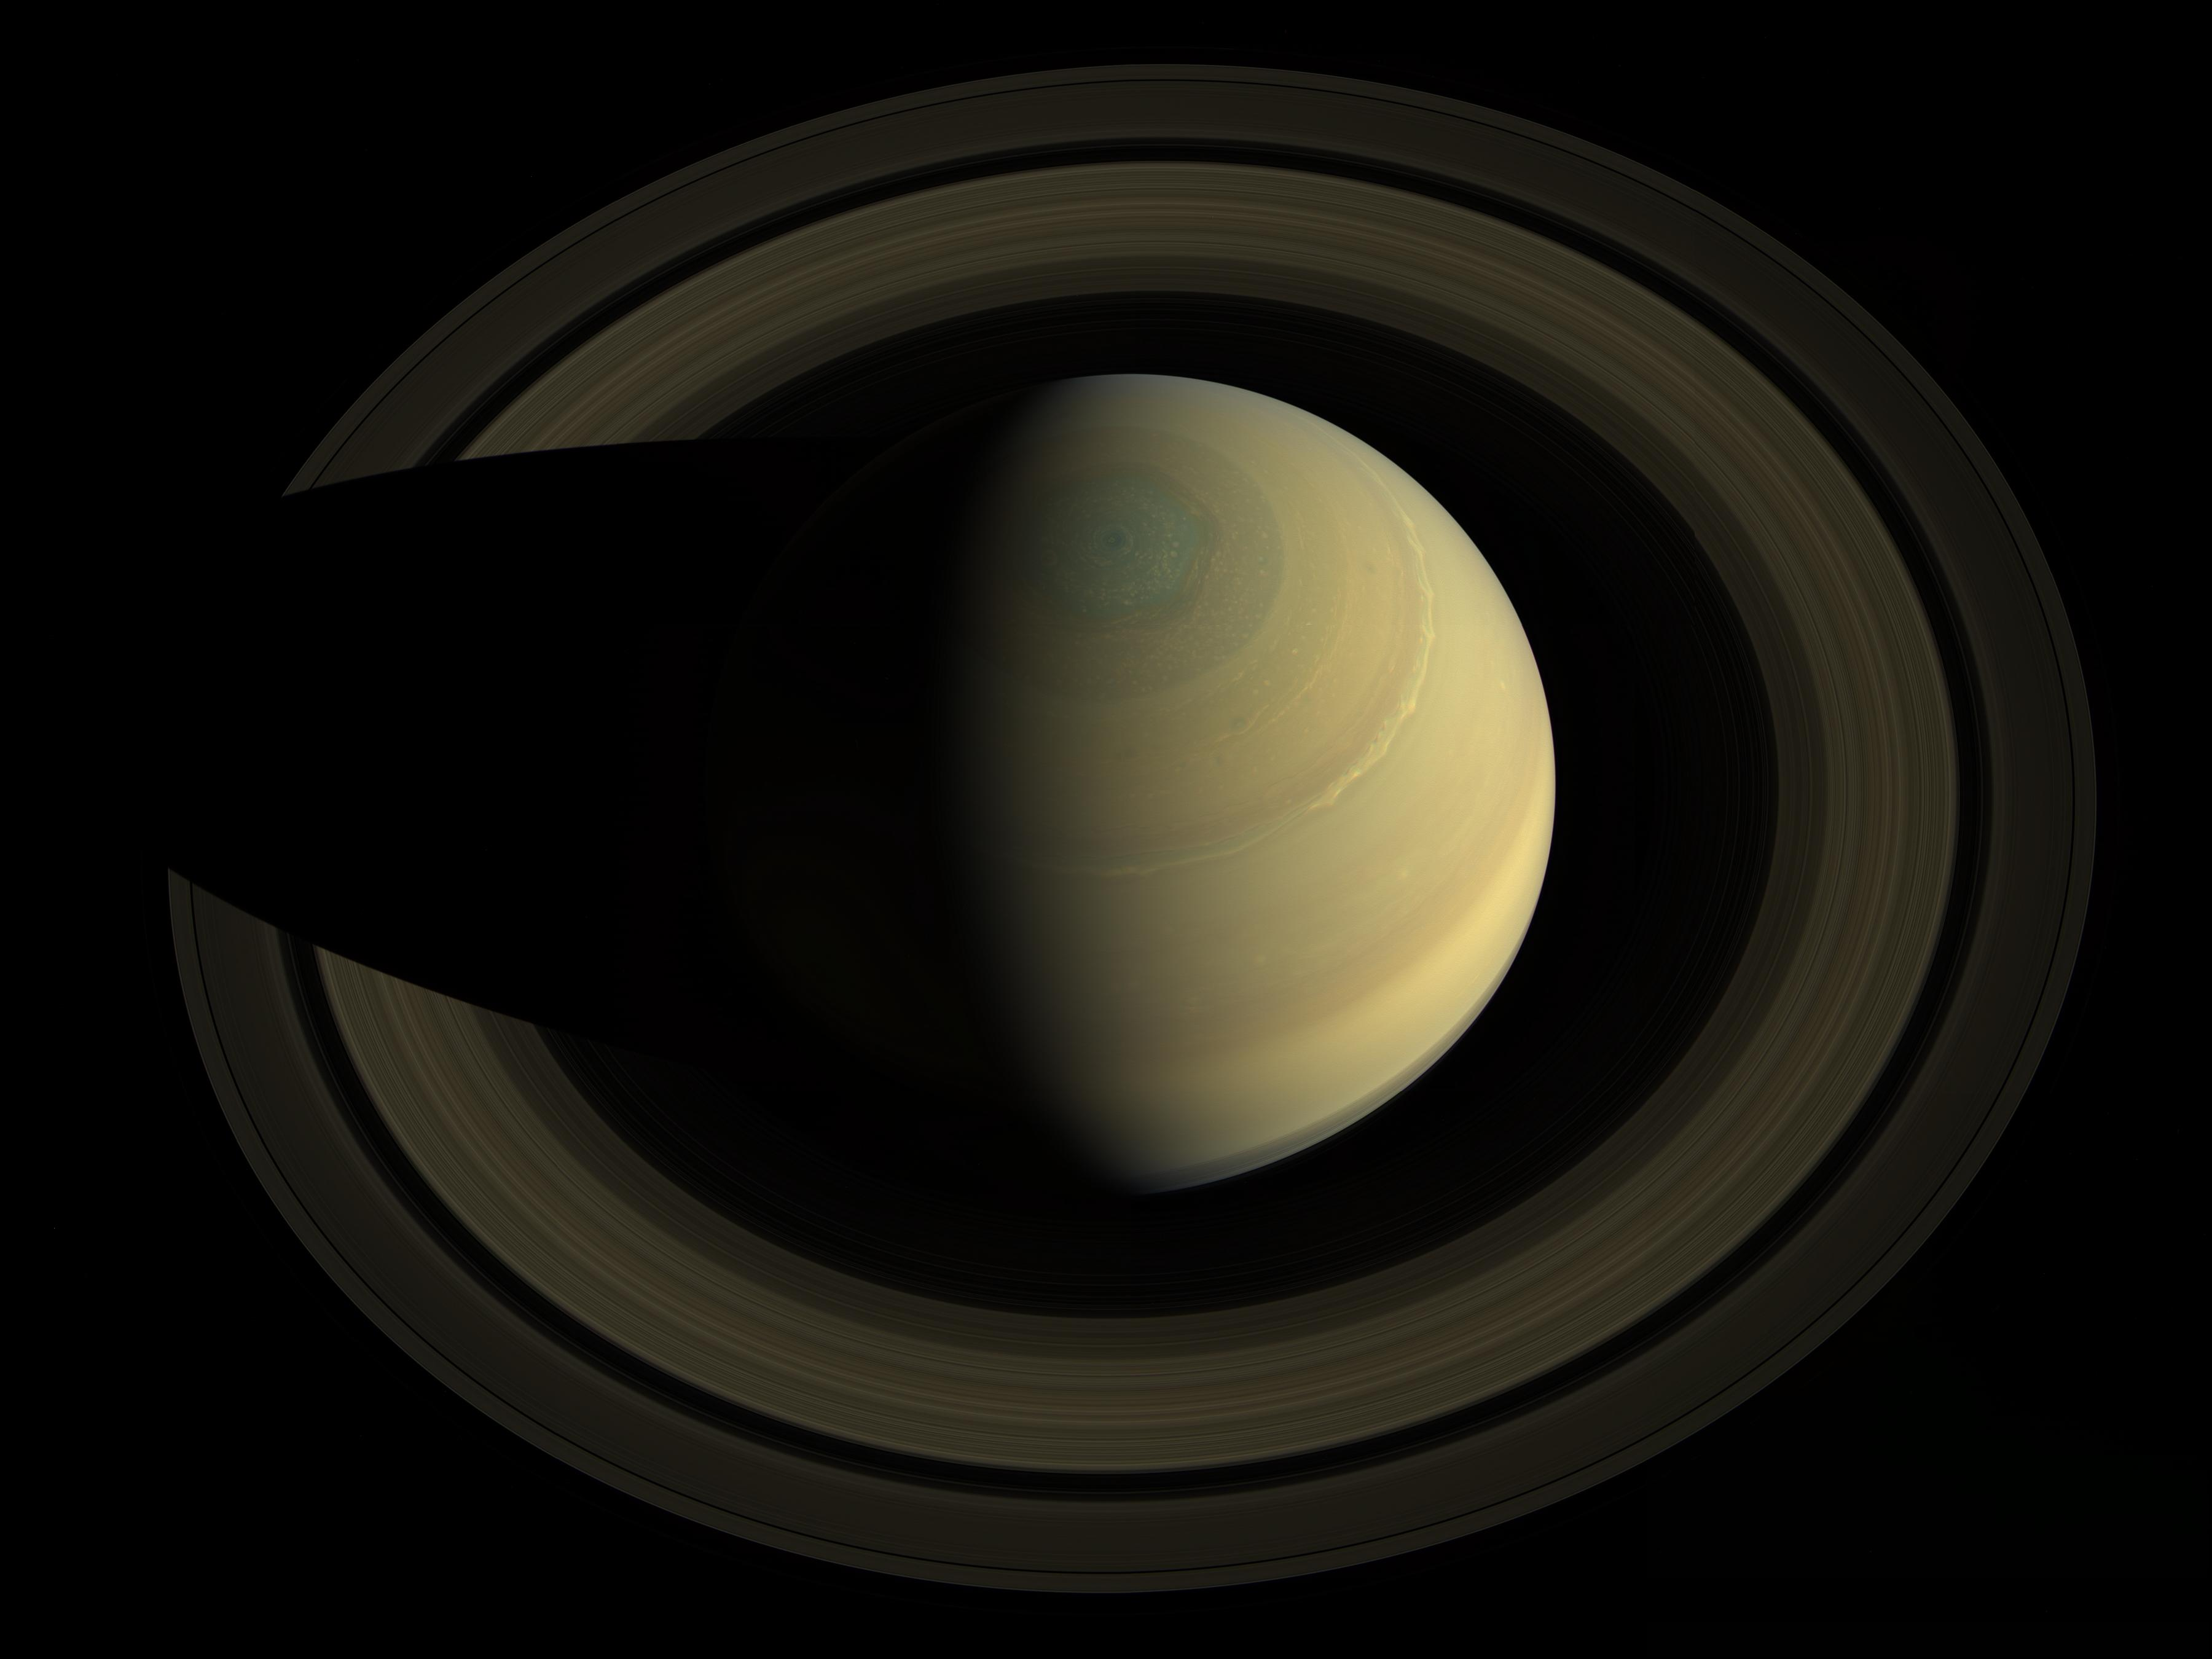 This mosaic was made from 36 images in three color filters obtained by Cassini's imaging science subsystem on Oct. 10, 2013. Credit: NASA/JPL-Caltech/Space Science Institute